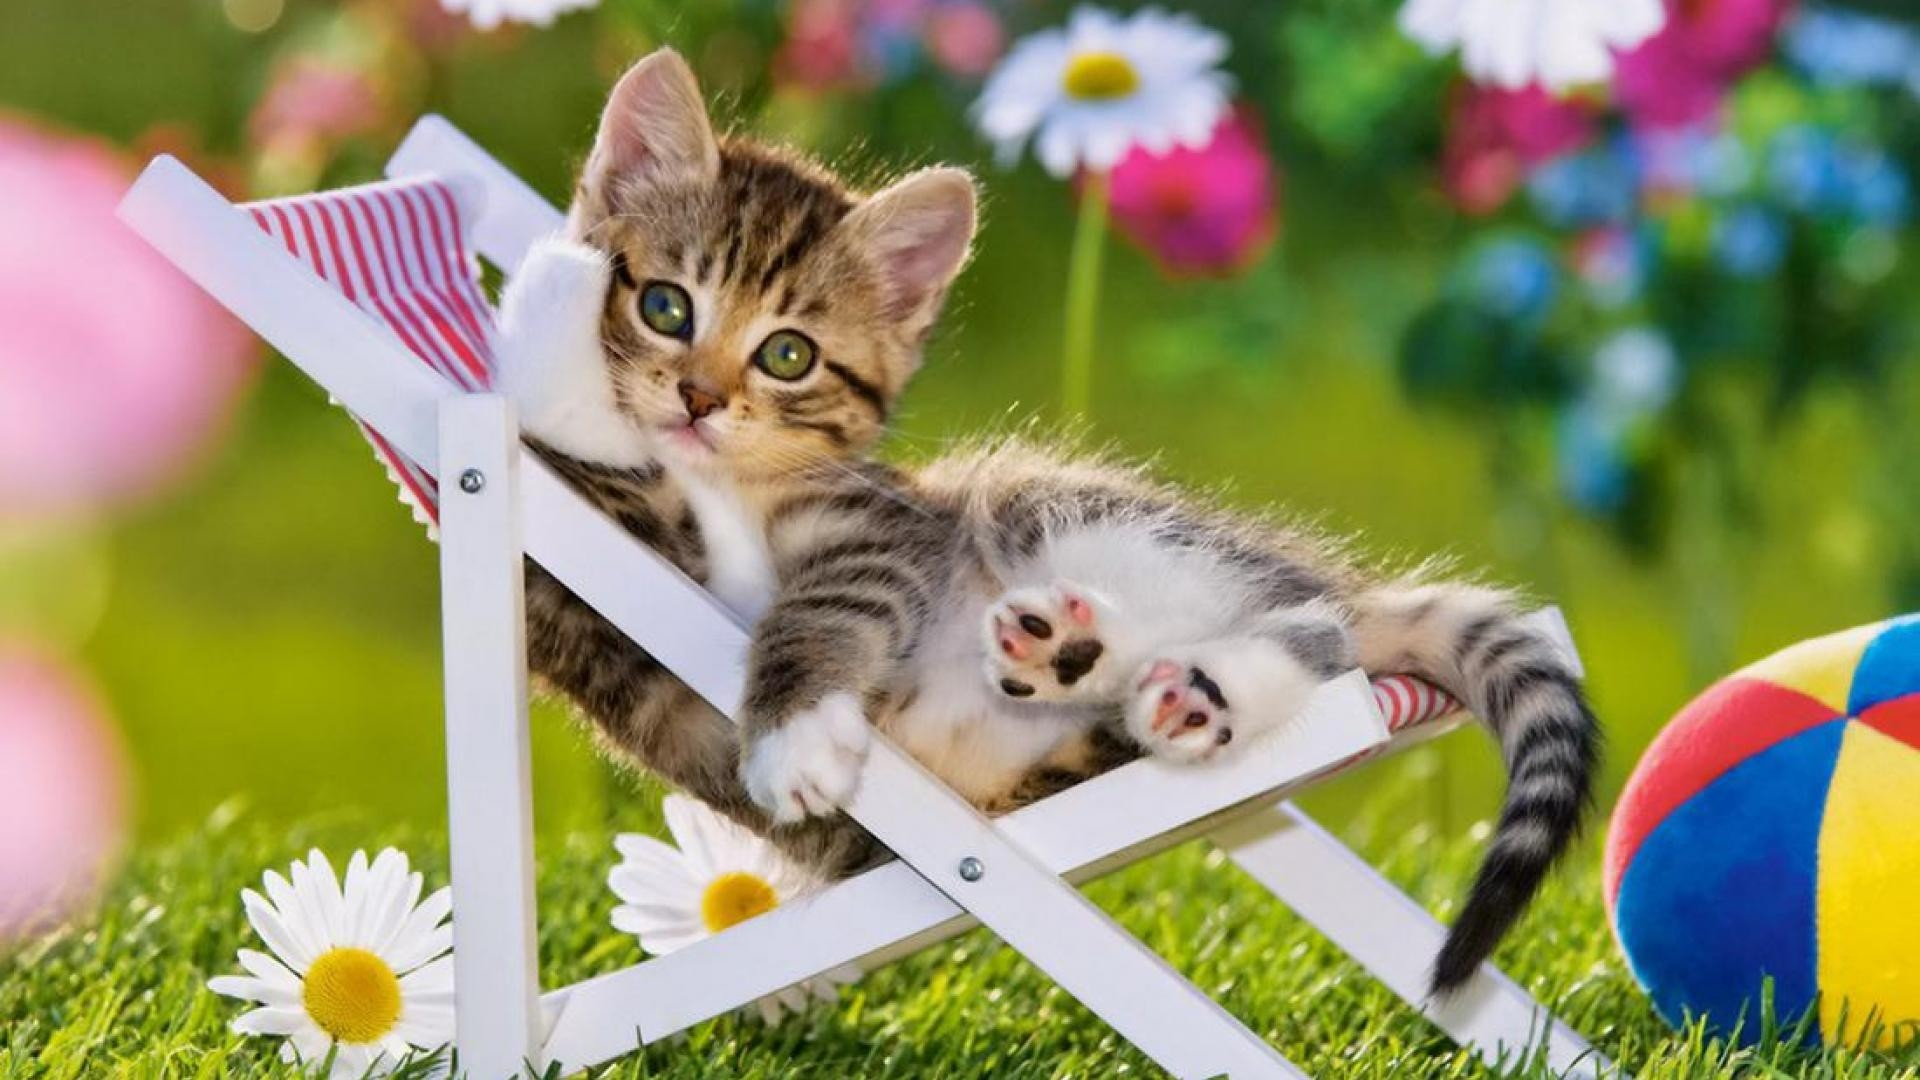 1920x1080 Summer Cat Wallpaper Images. Dooves Wallpaper - fond d'ecran